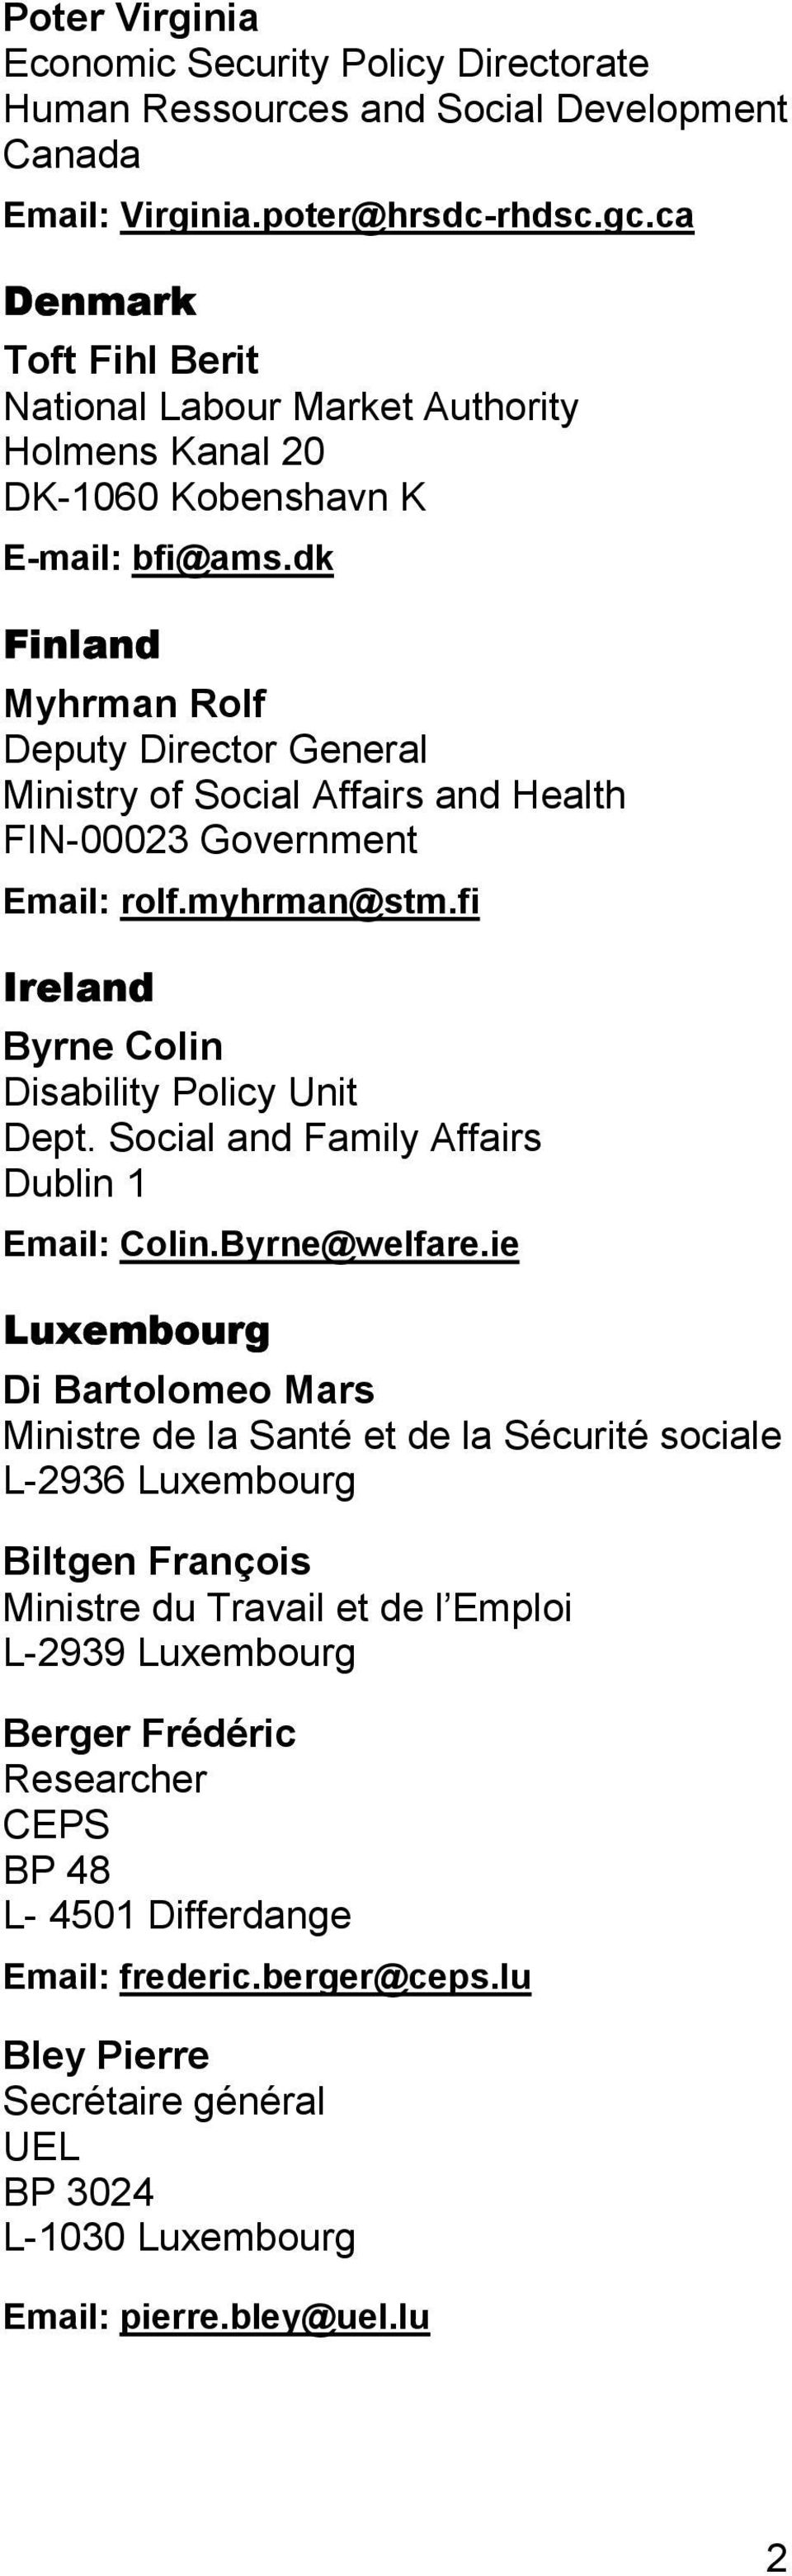 dk Finland Myhrman Rolf Deputy Director General Ministry of Social Affairs and Health FIN-00023 Government Email: rolf.myhrman@stm.fi Ireland Byrne Colin Disability Policy Unit Dept.